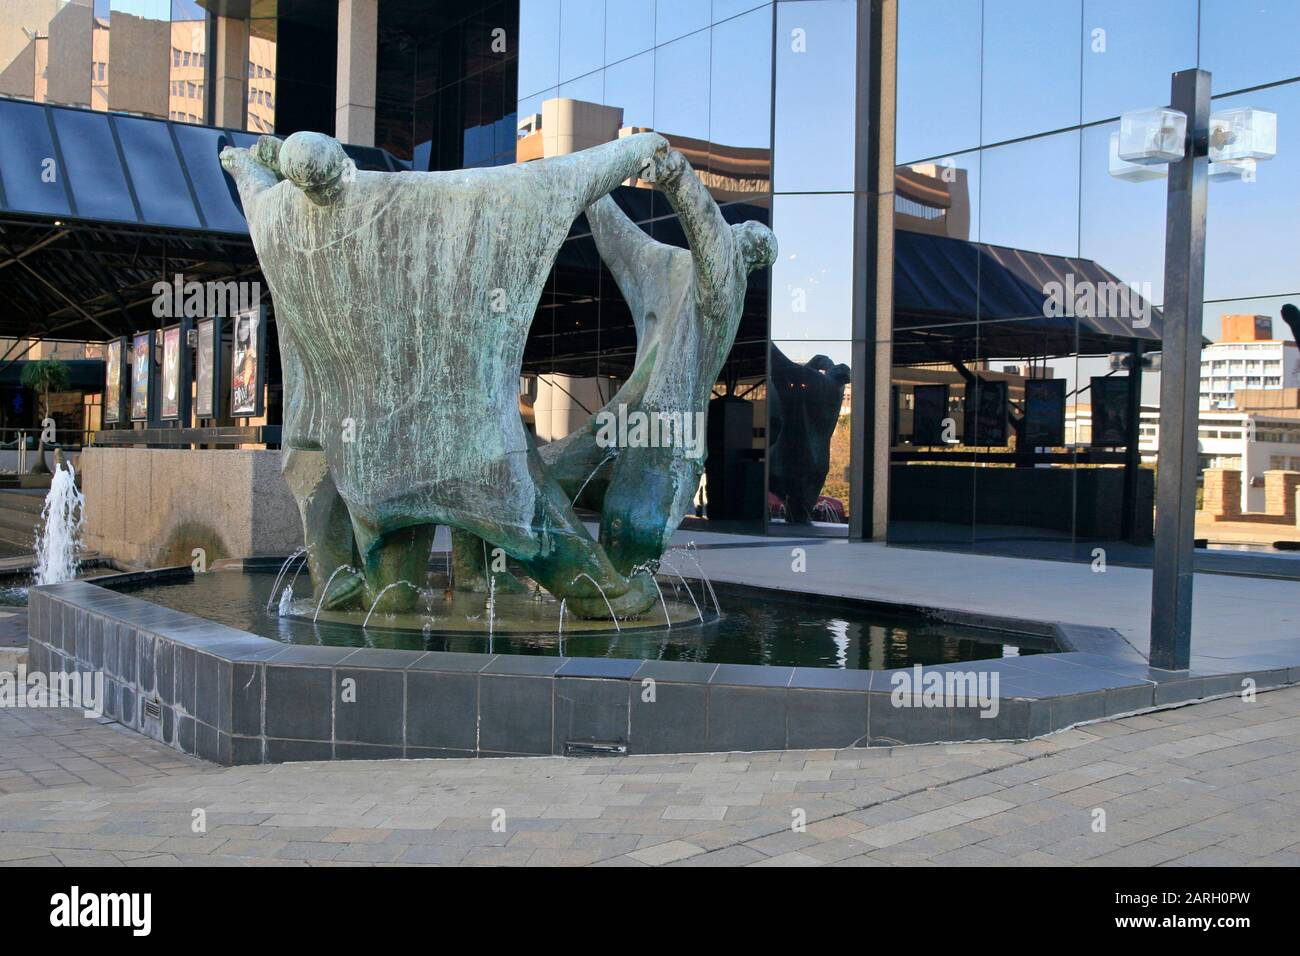 Statues in front of Joburg Theatre called The Playmakers by Ernest Ullman, Braamfontein, Johannesburg, Gauteng, South Africa. Stock Photo